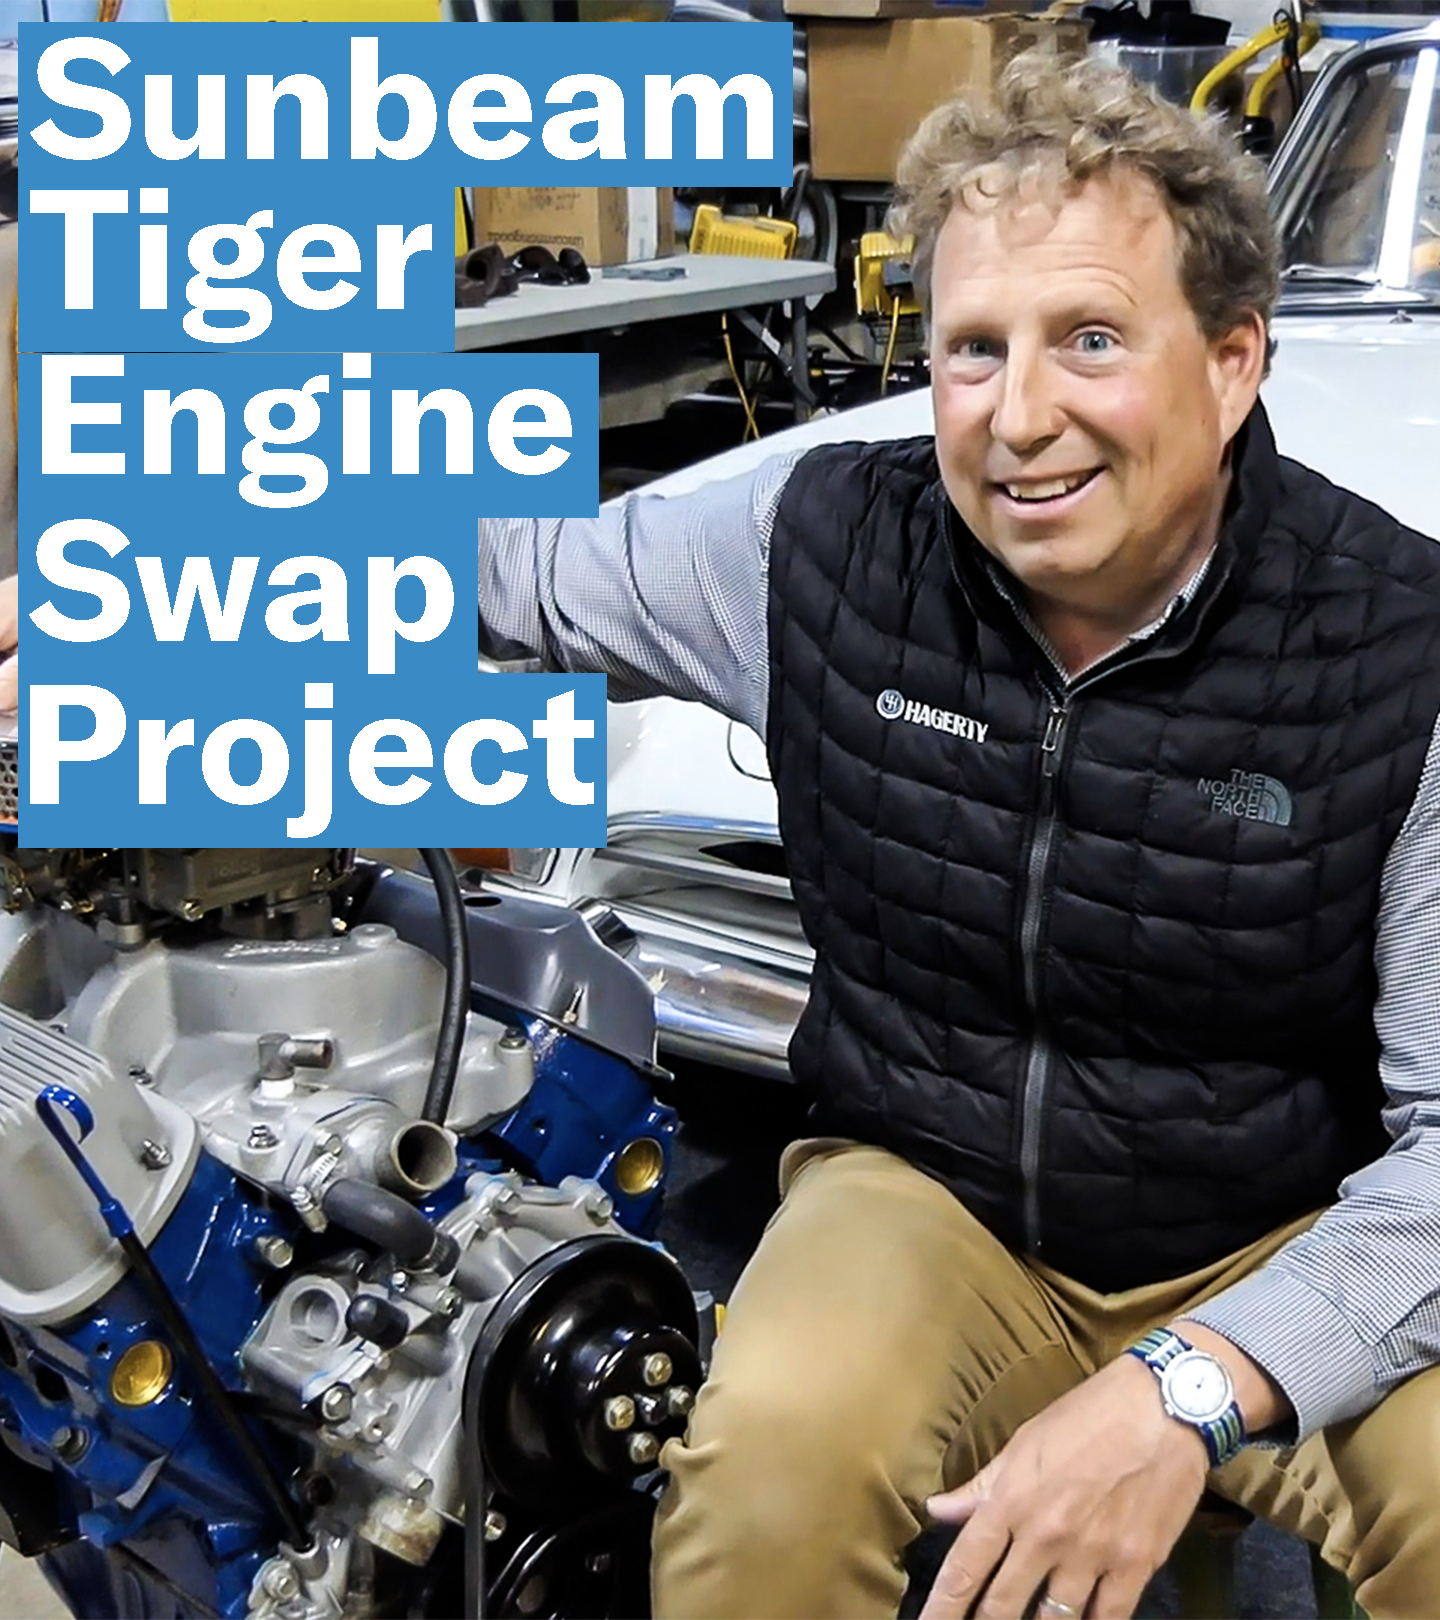 Sunbeam Tiger Engine Swap Project